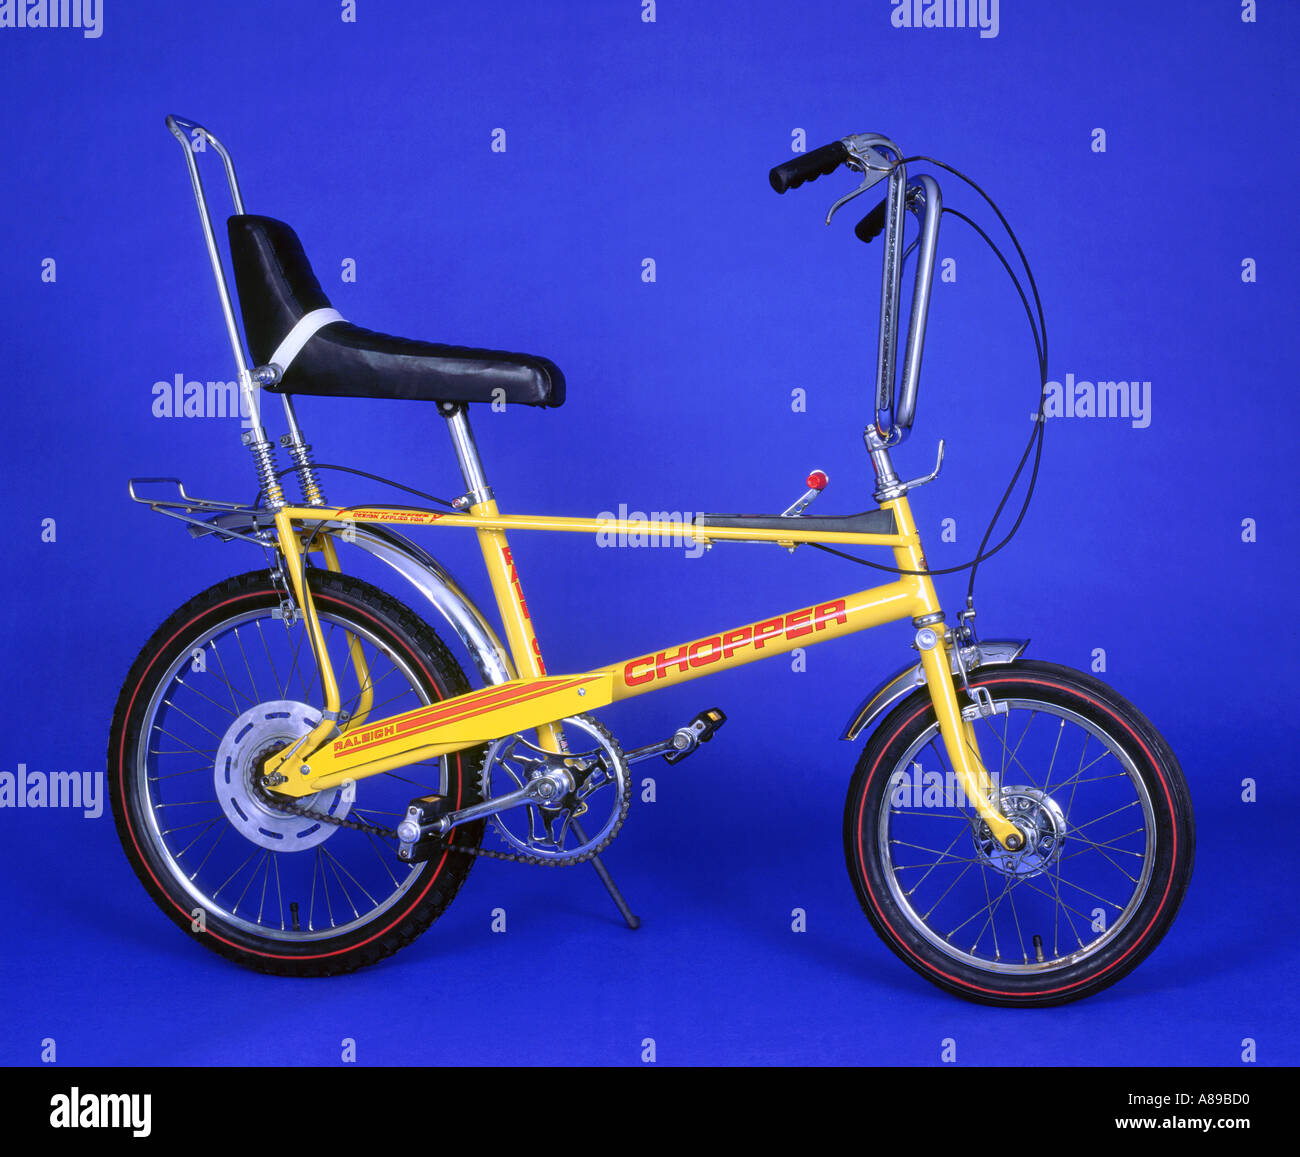 1976 Raleigh Chopper bicycle - Stock Image